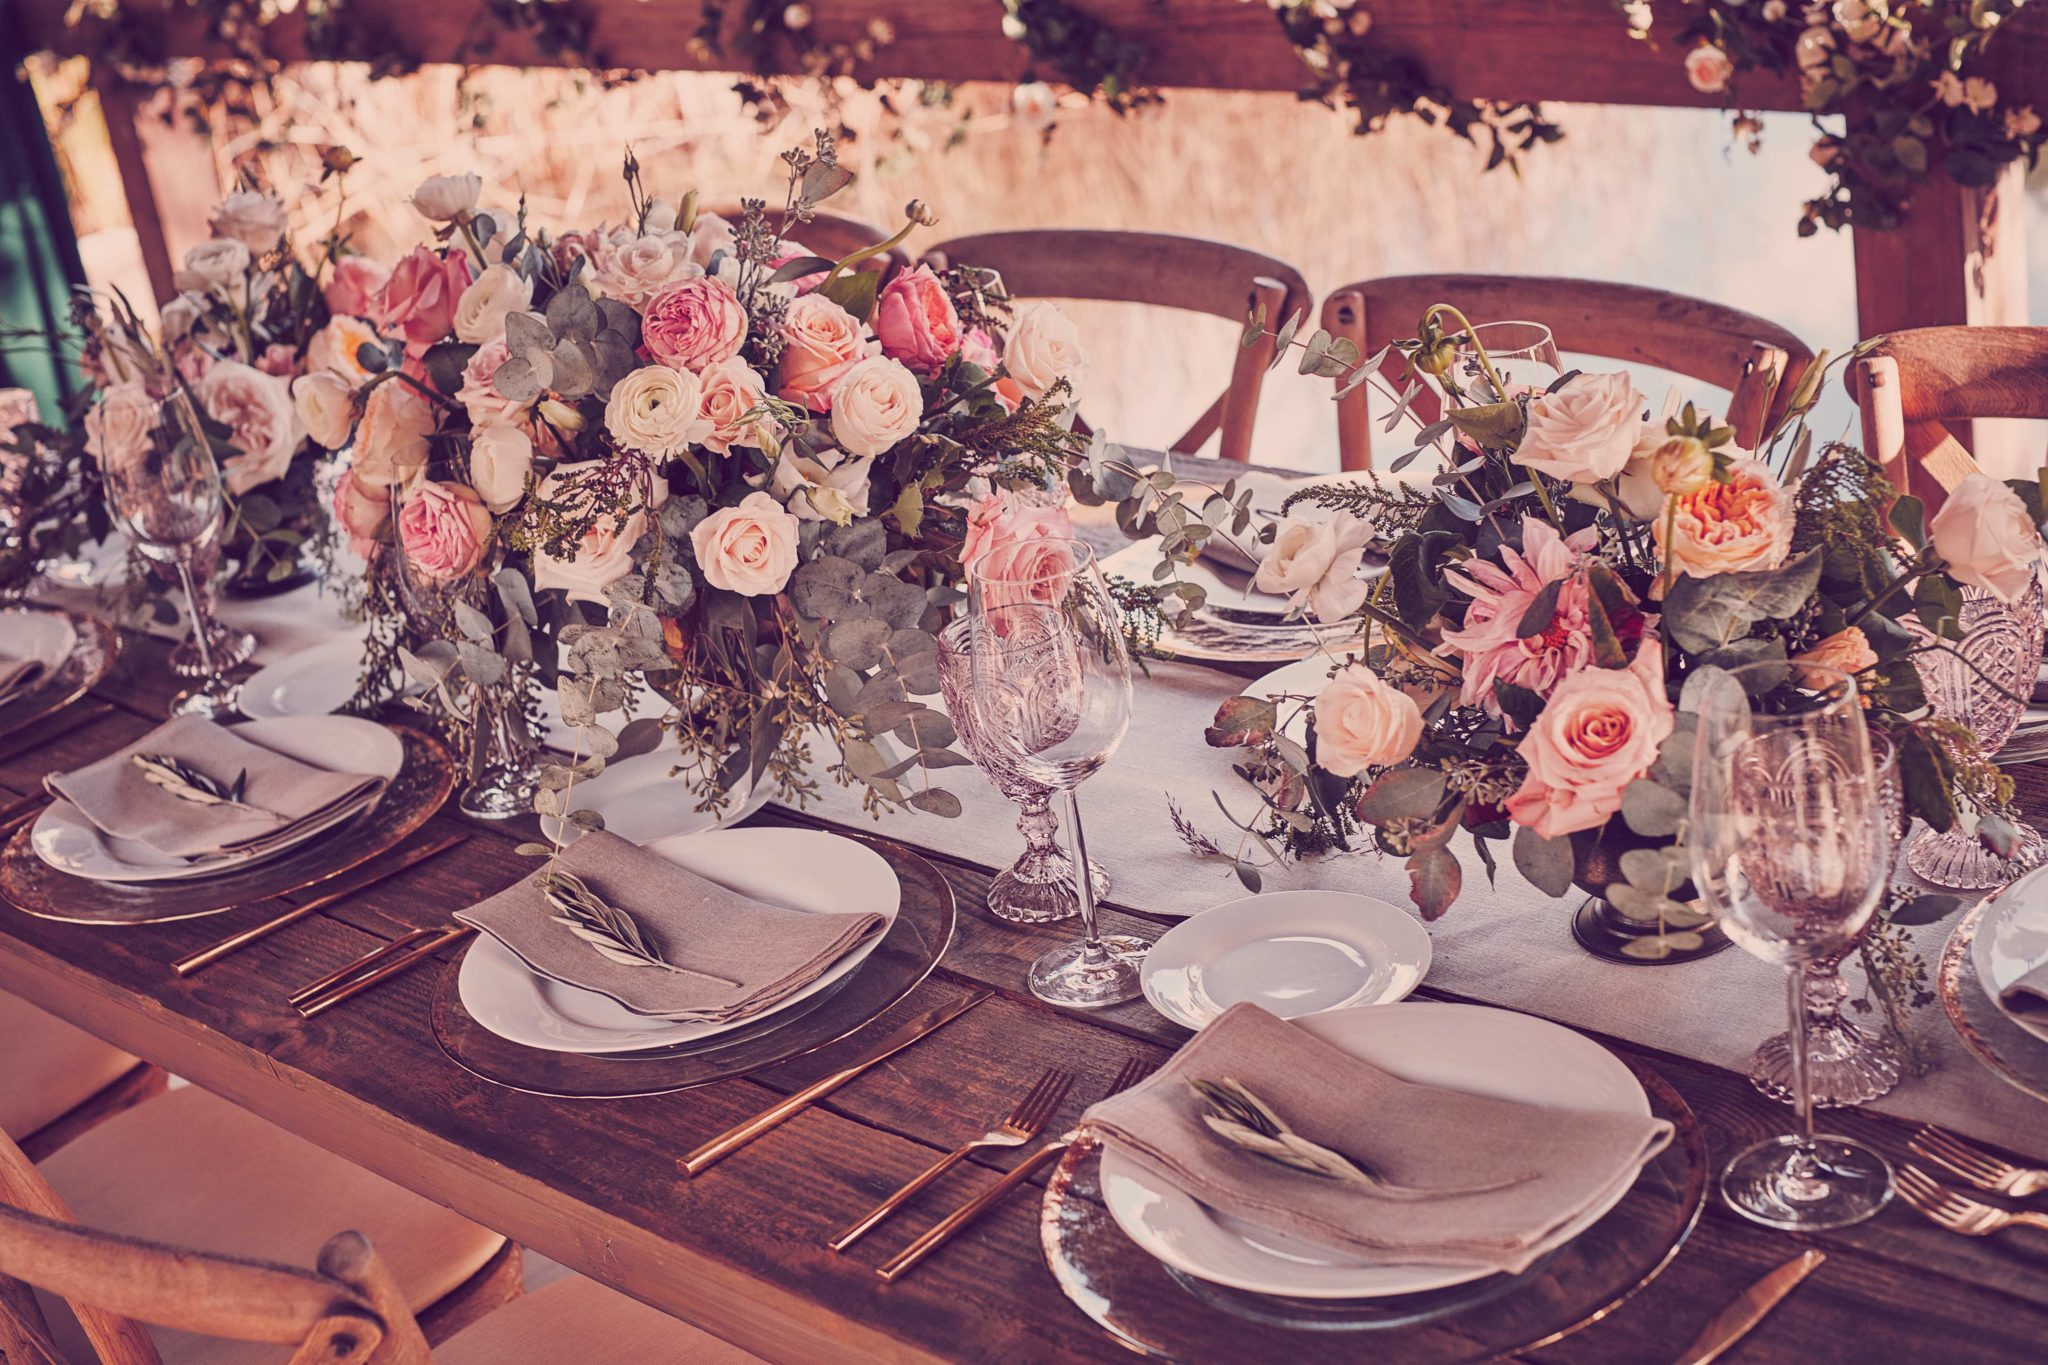 Wedding table with decorations